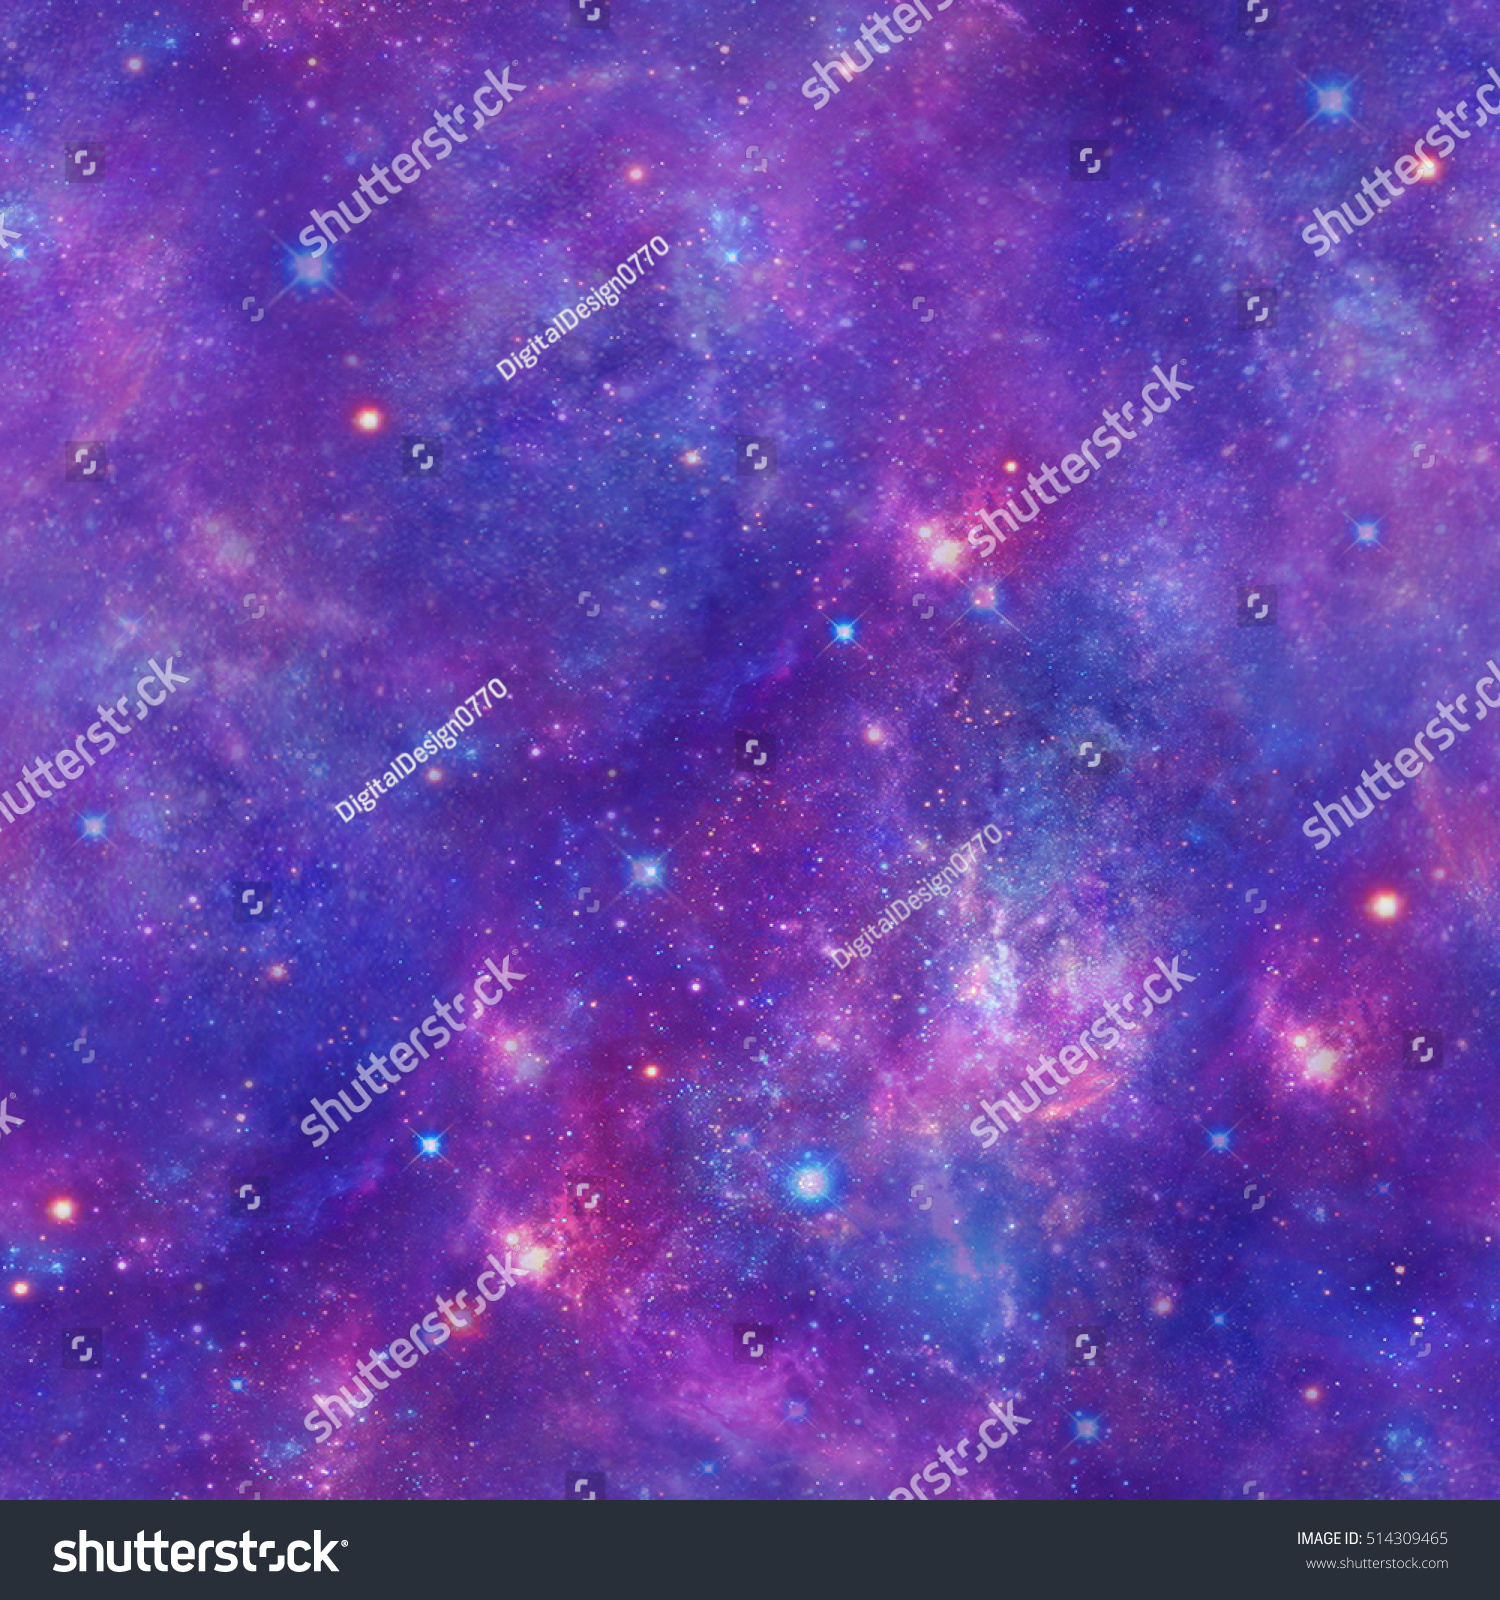 Pictures > Space Repeating Backgrounds Patterns Desktop ...  Space Repeating Background Patterns